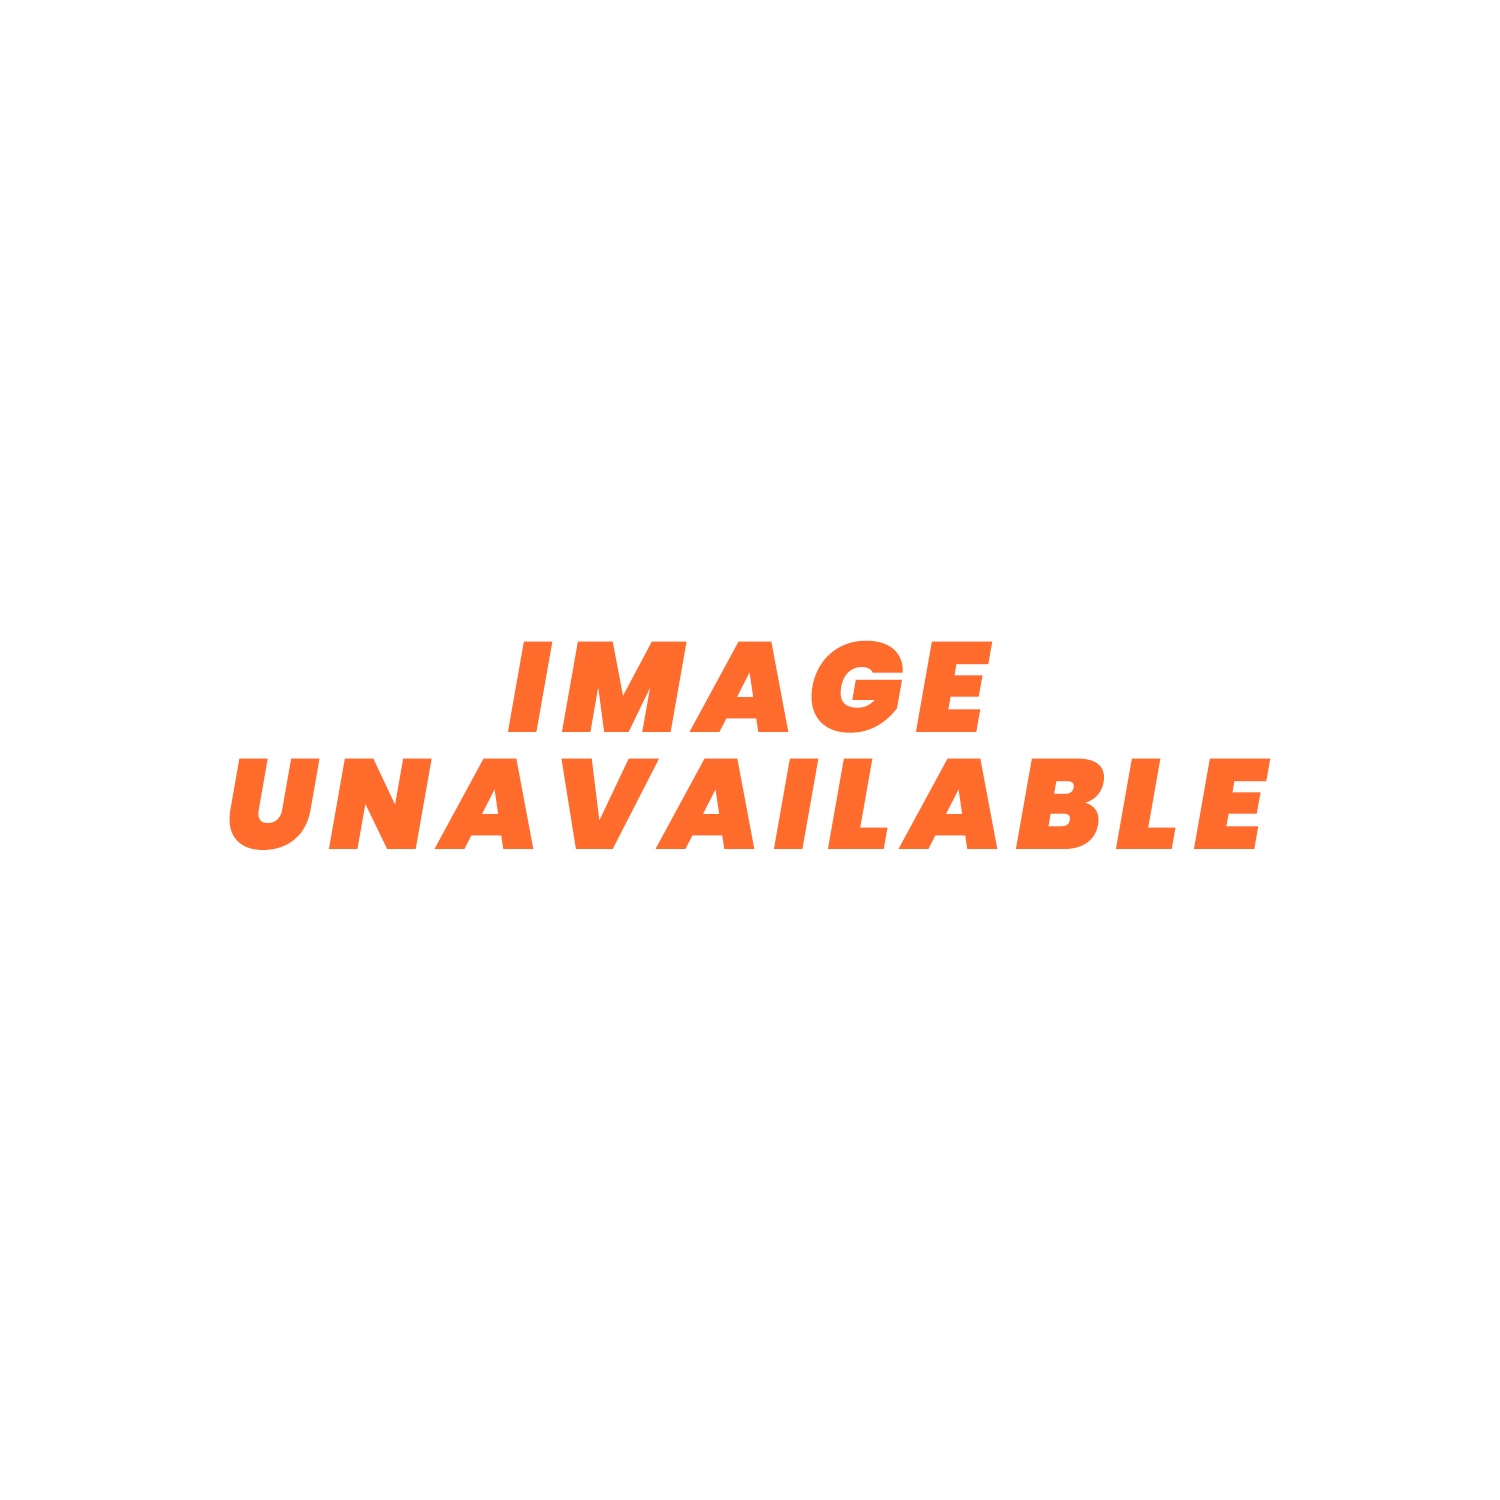 K20/K24 Alternator Relocate Strengthening Bracket